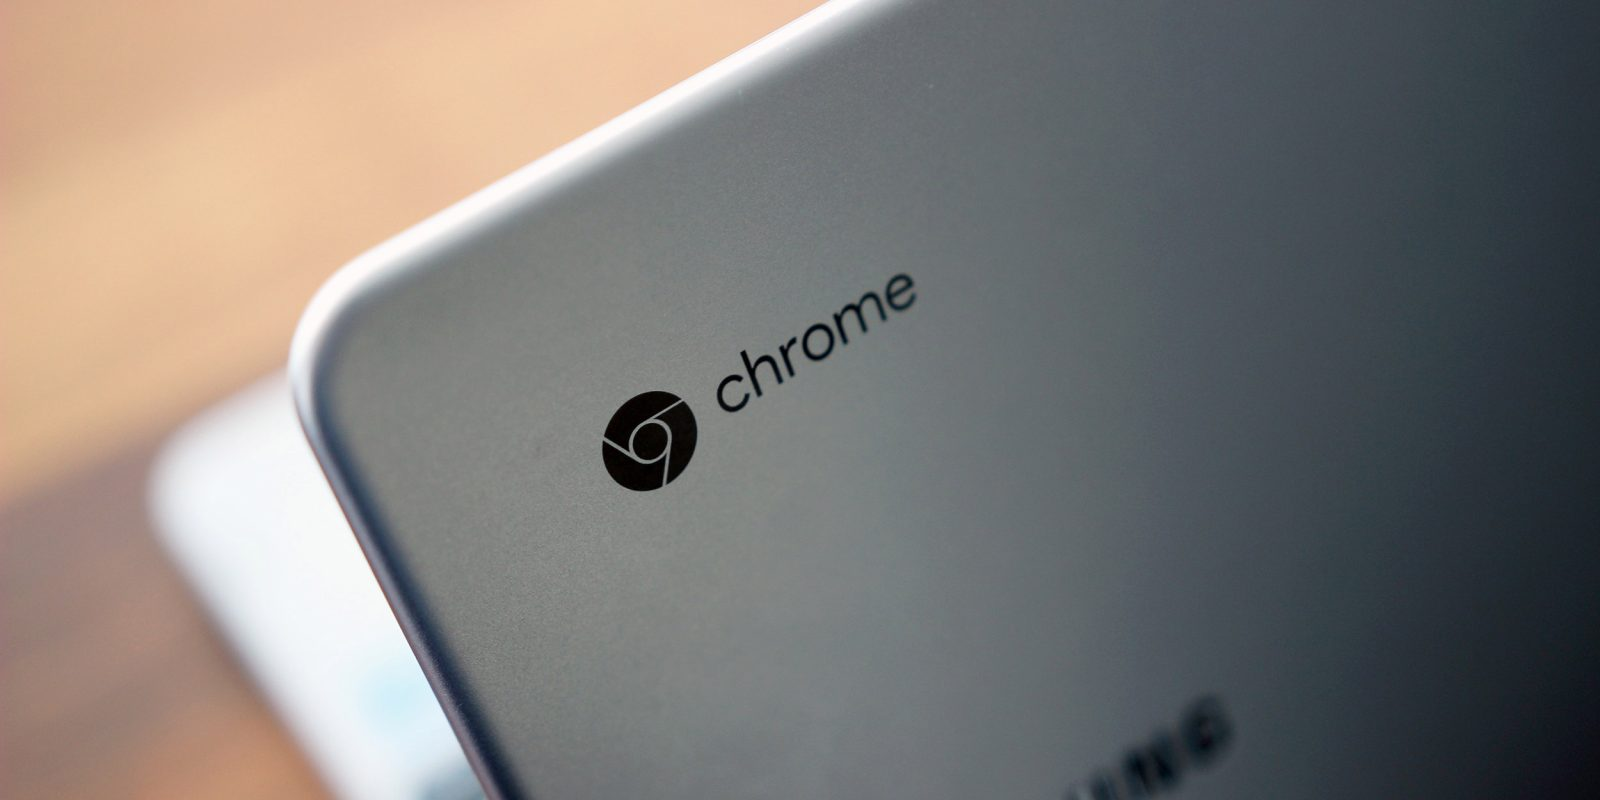 Google Chrome's new tab page backgrounds will integrate with